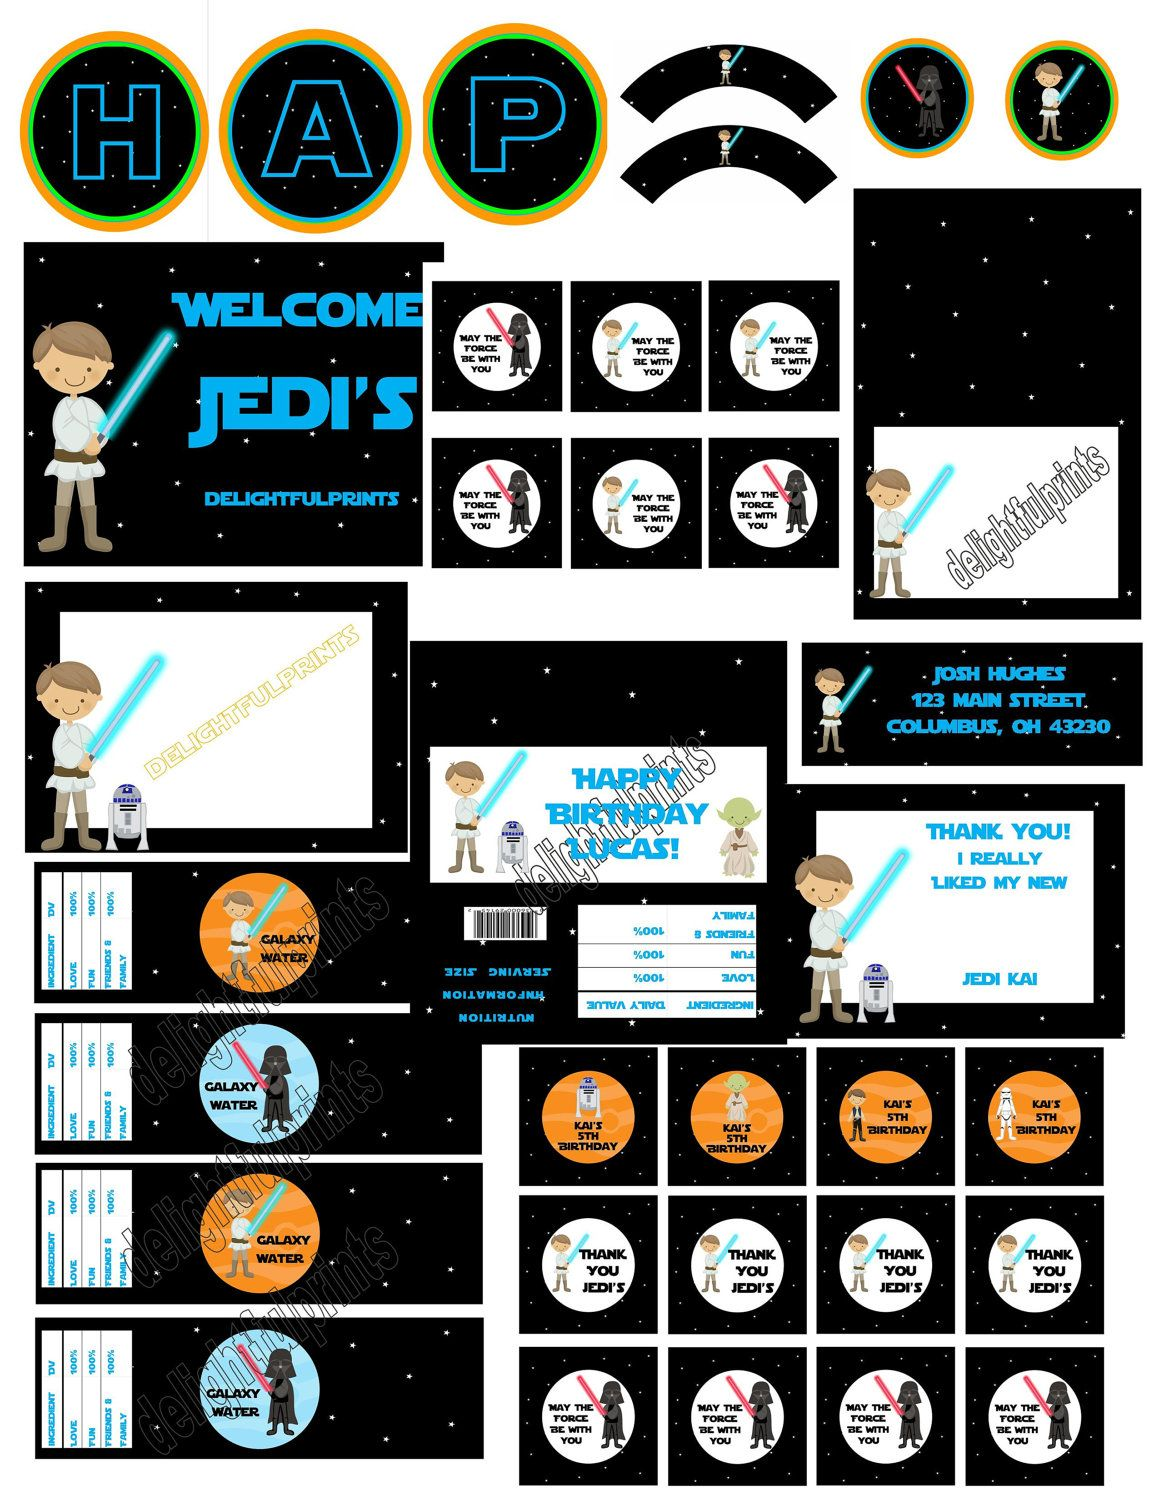 Star Wars party inspired complete party by delightfulprints